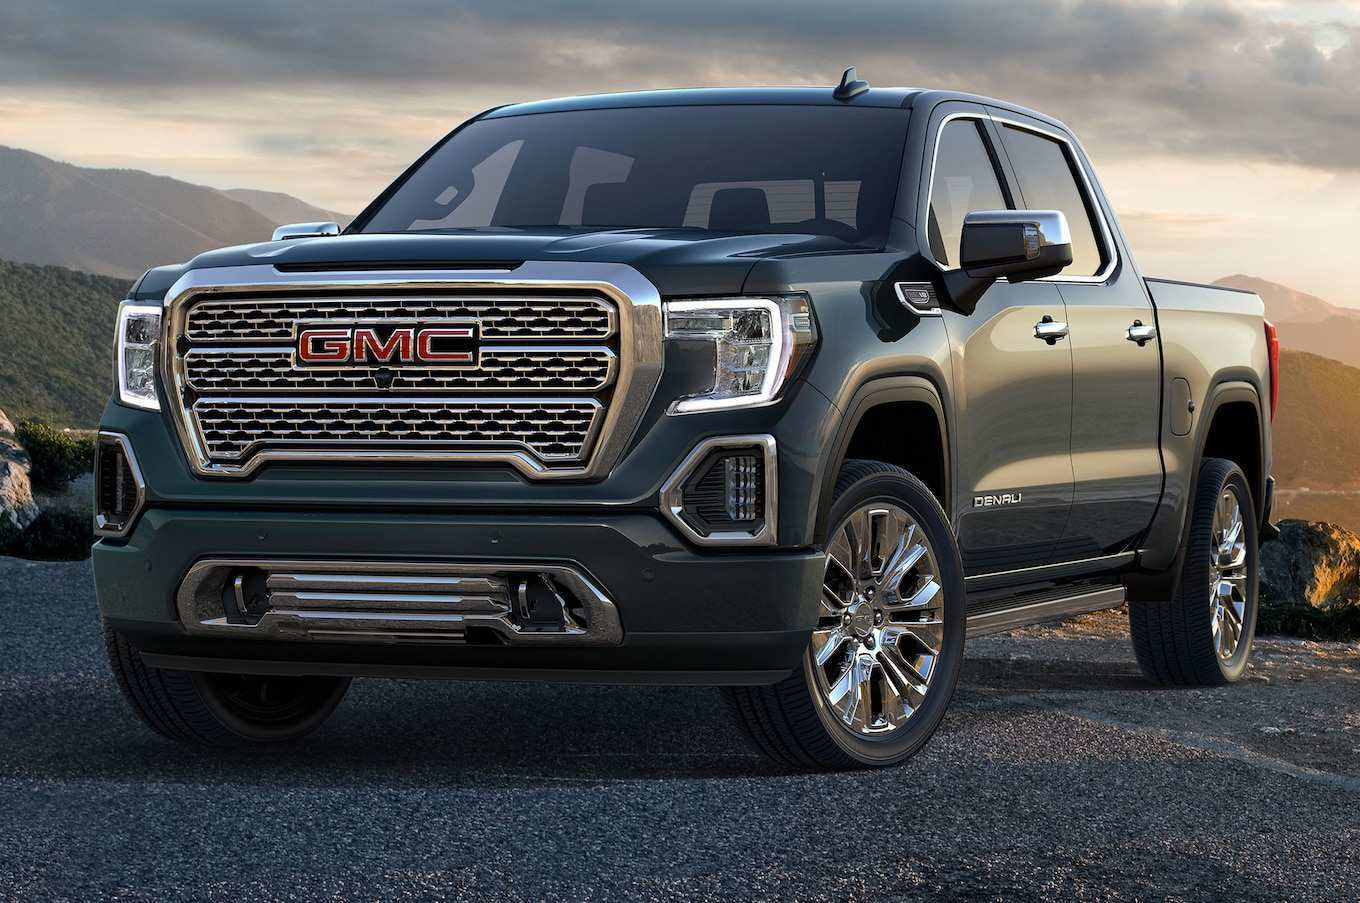 69 A 2019 Gmc Sierra Interio Model